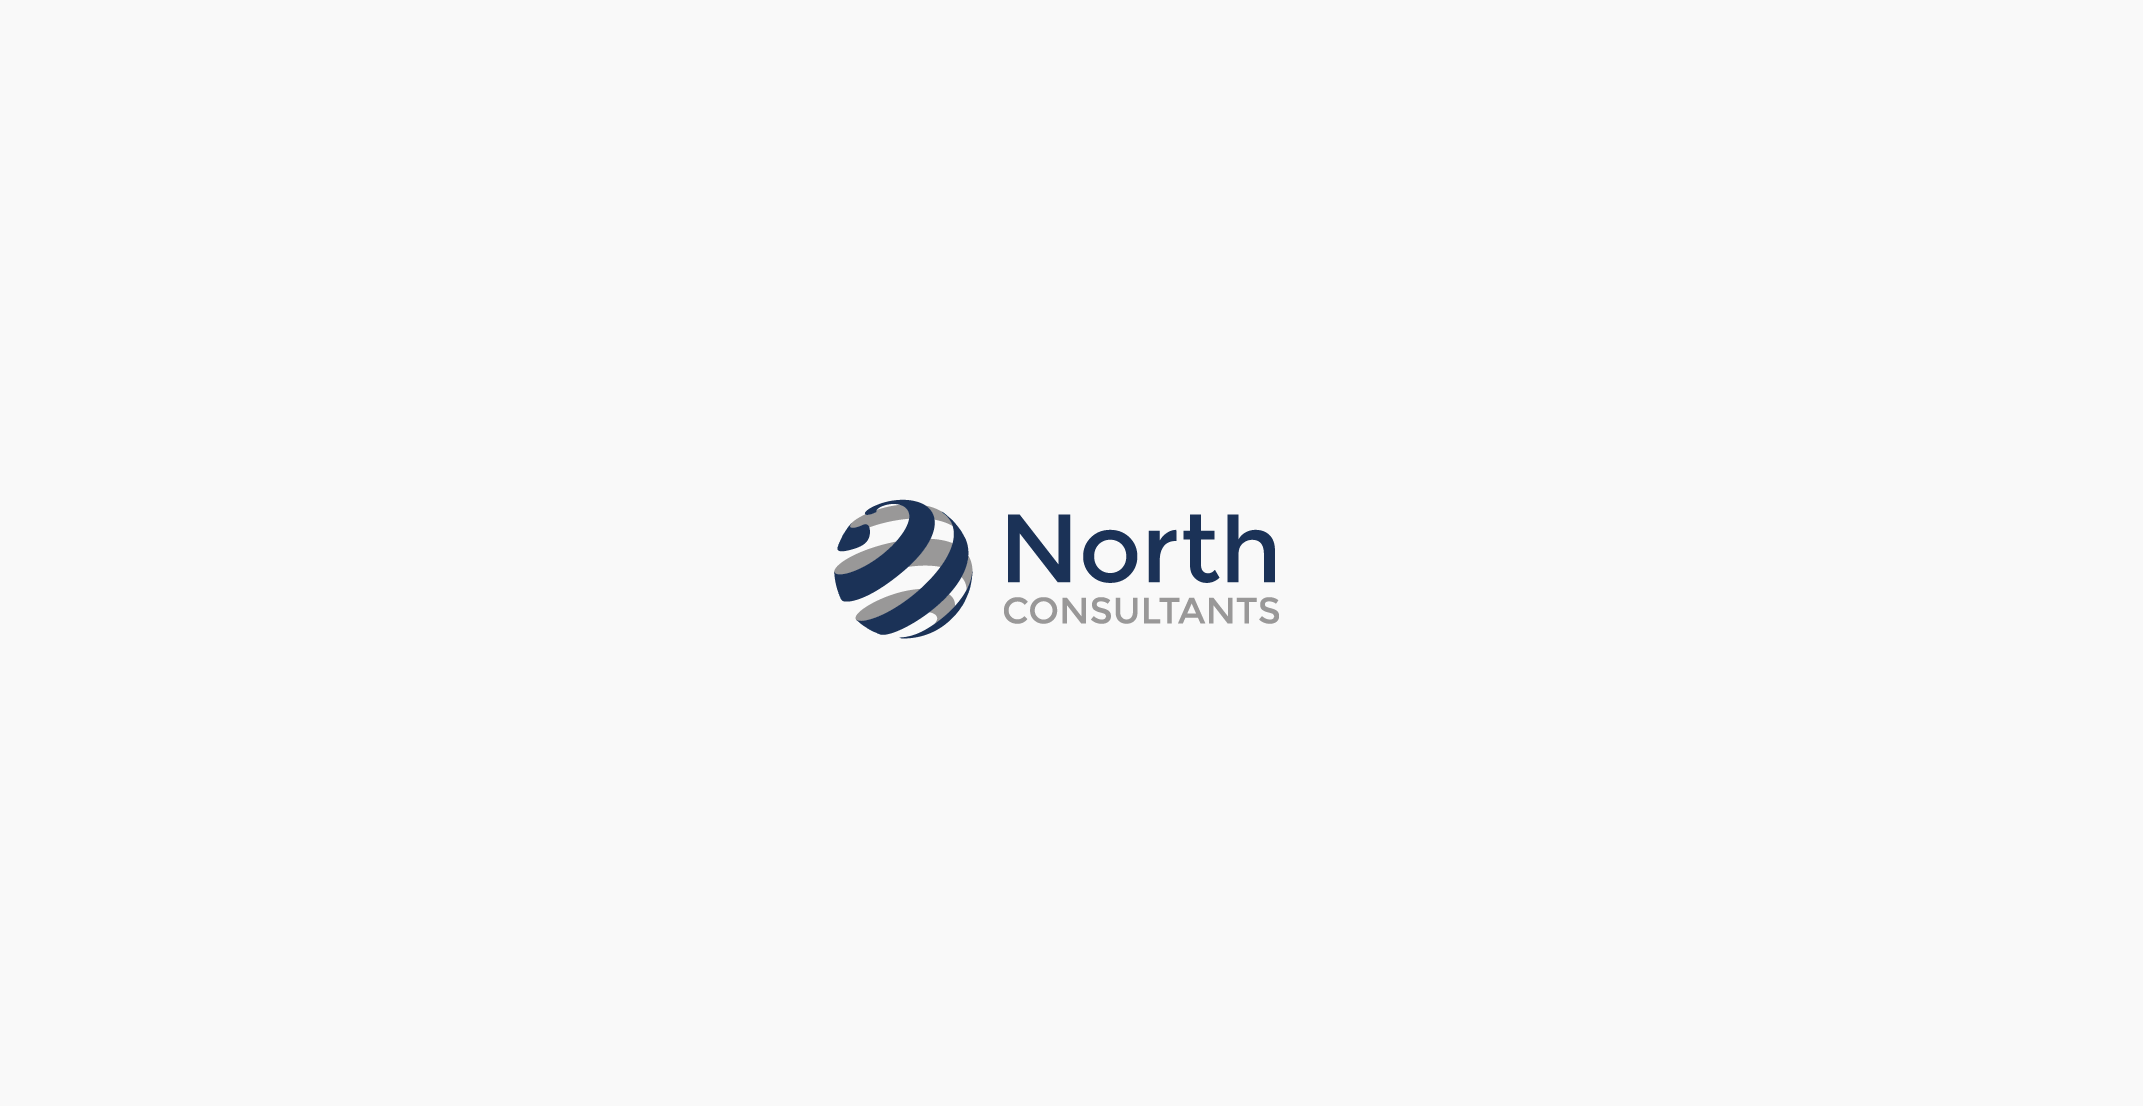 Logo designe for North Consultants